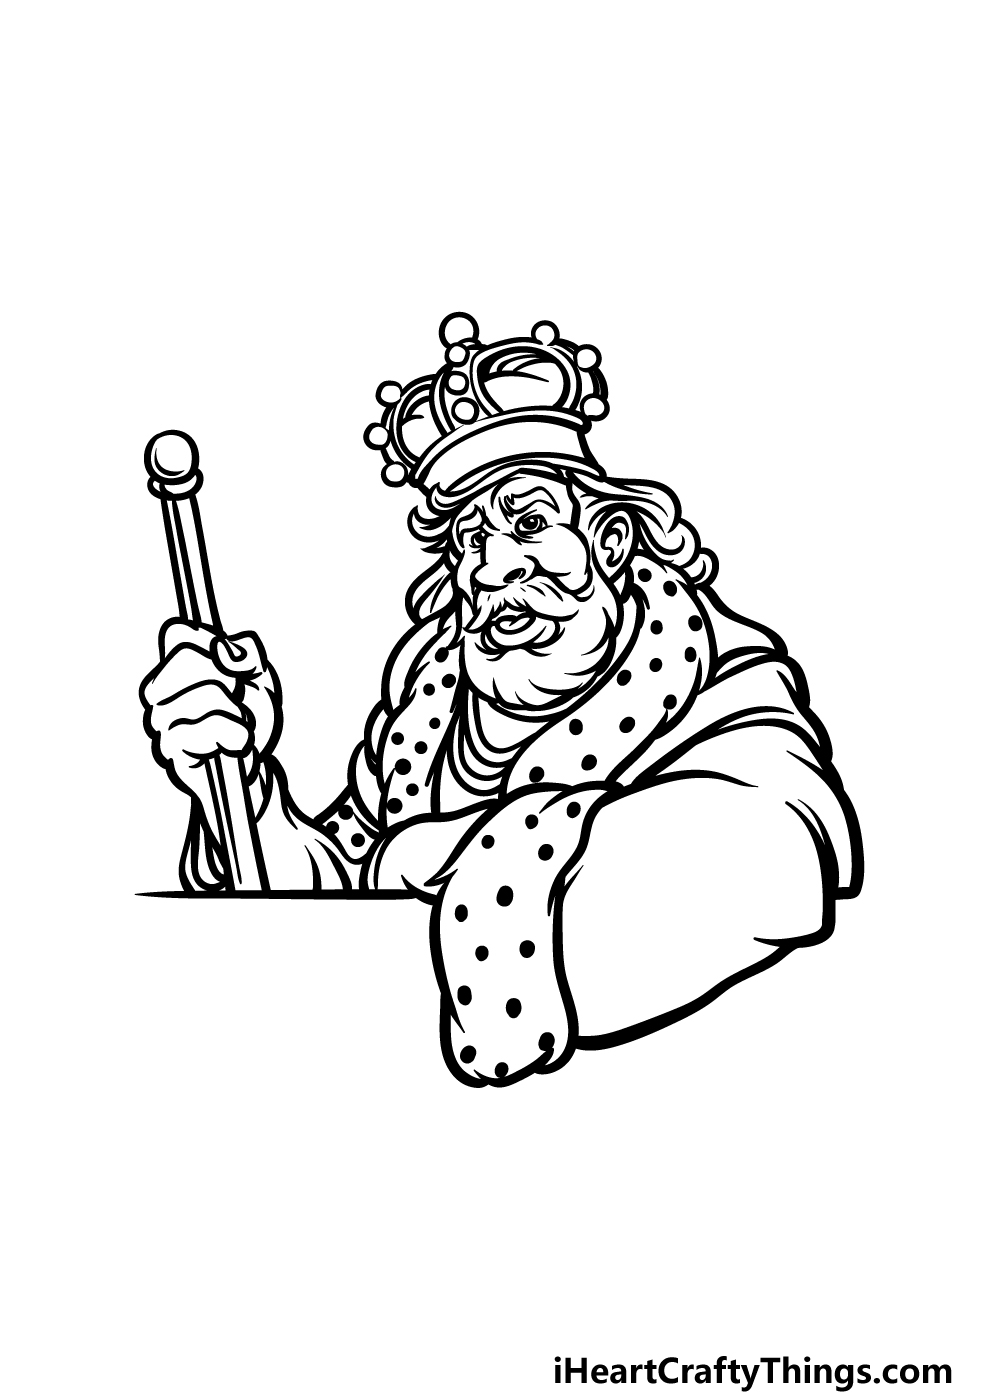 how to draw a King step 5